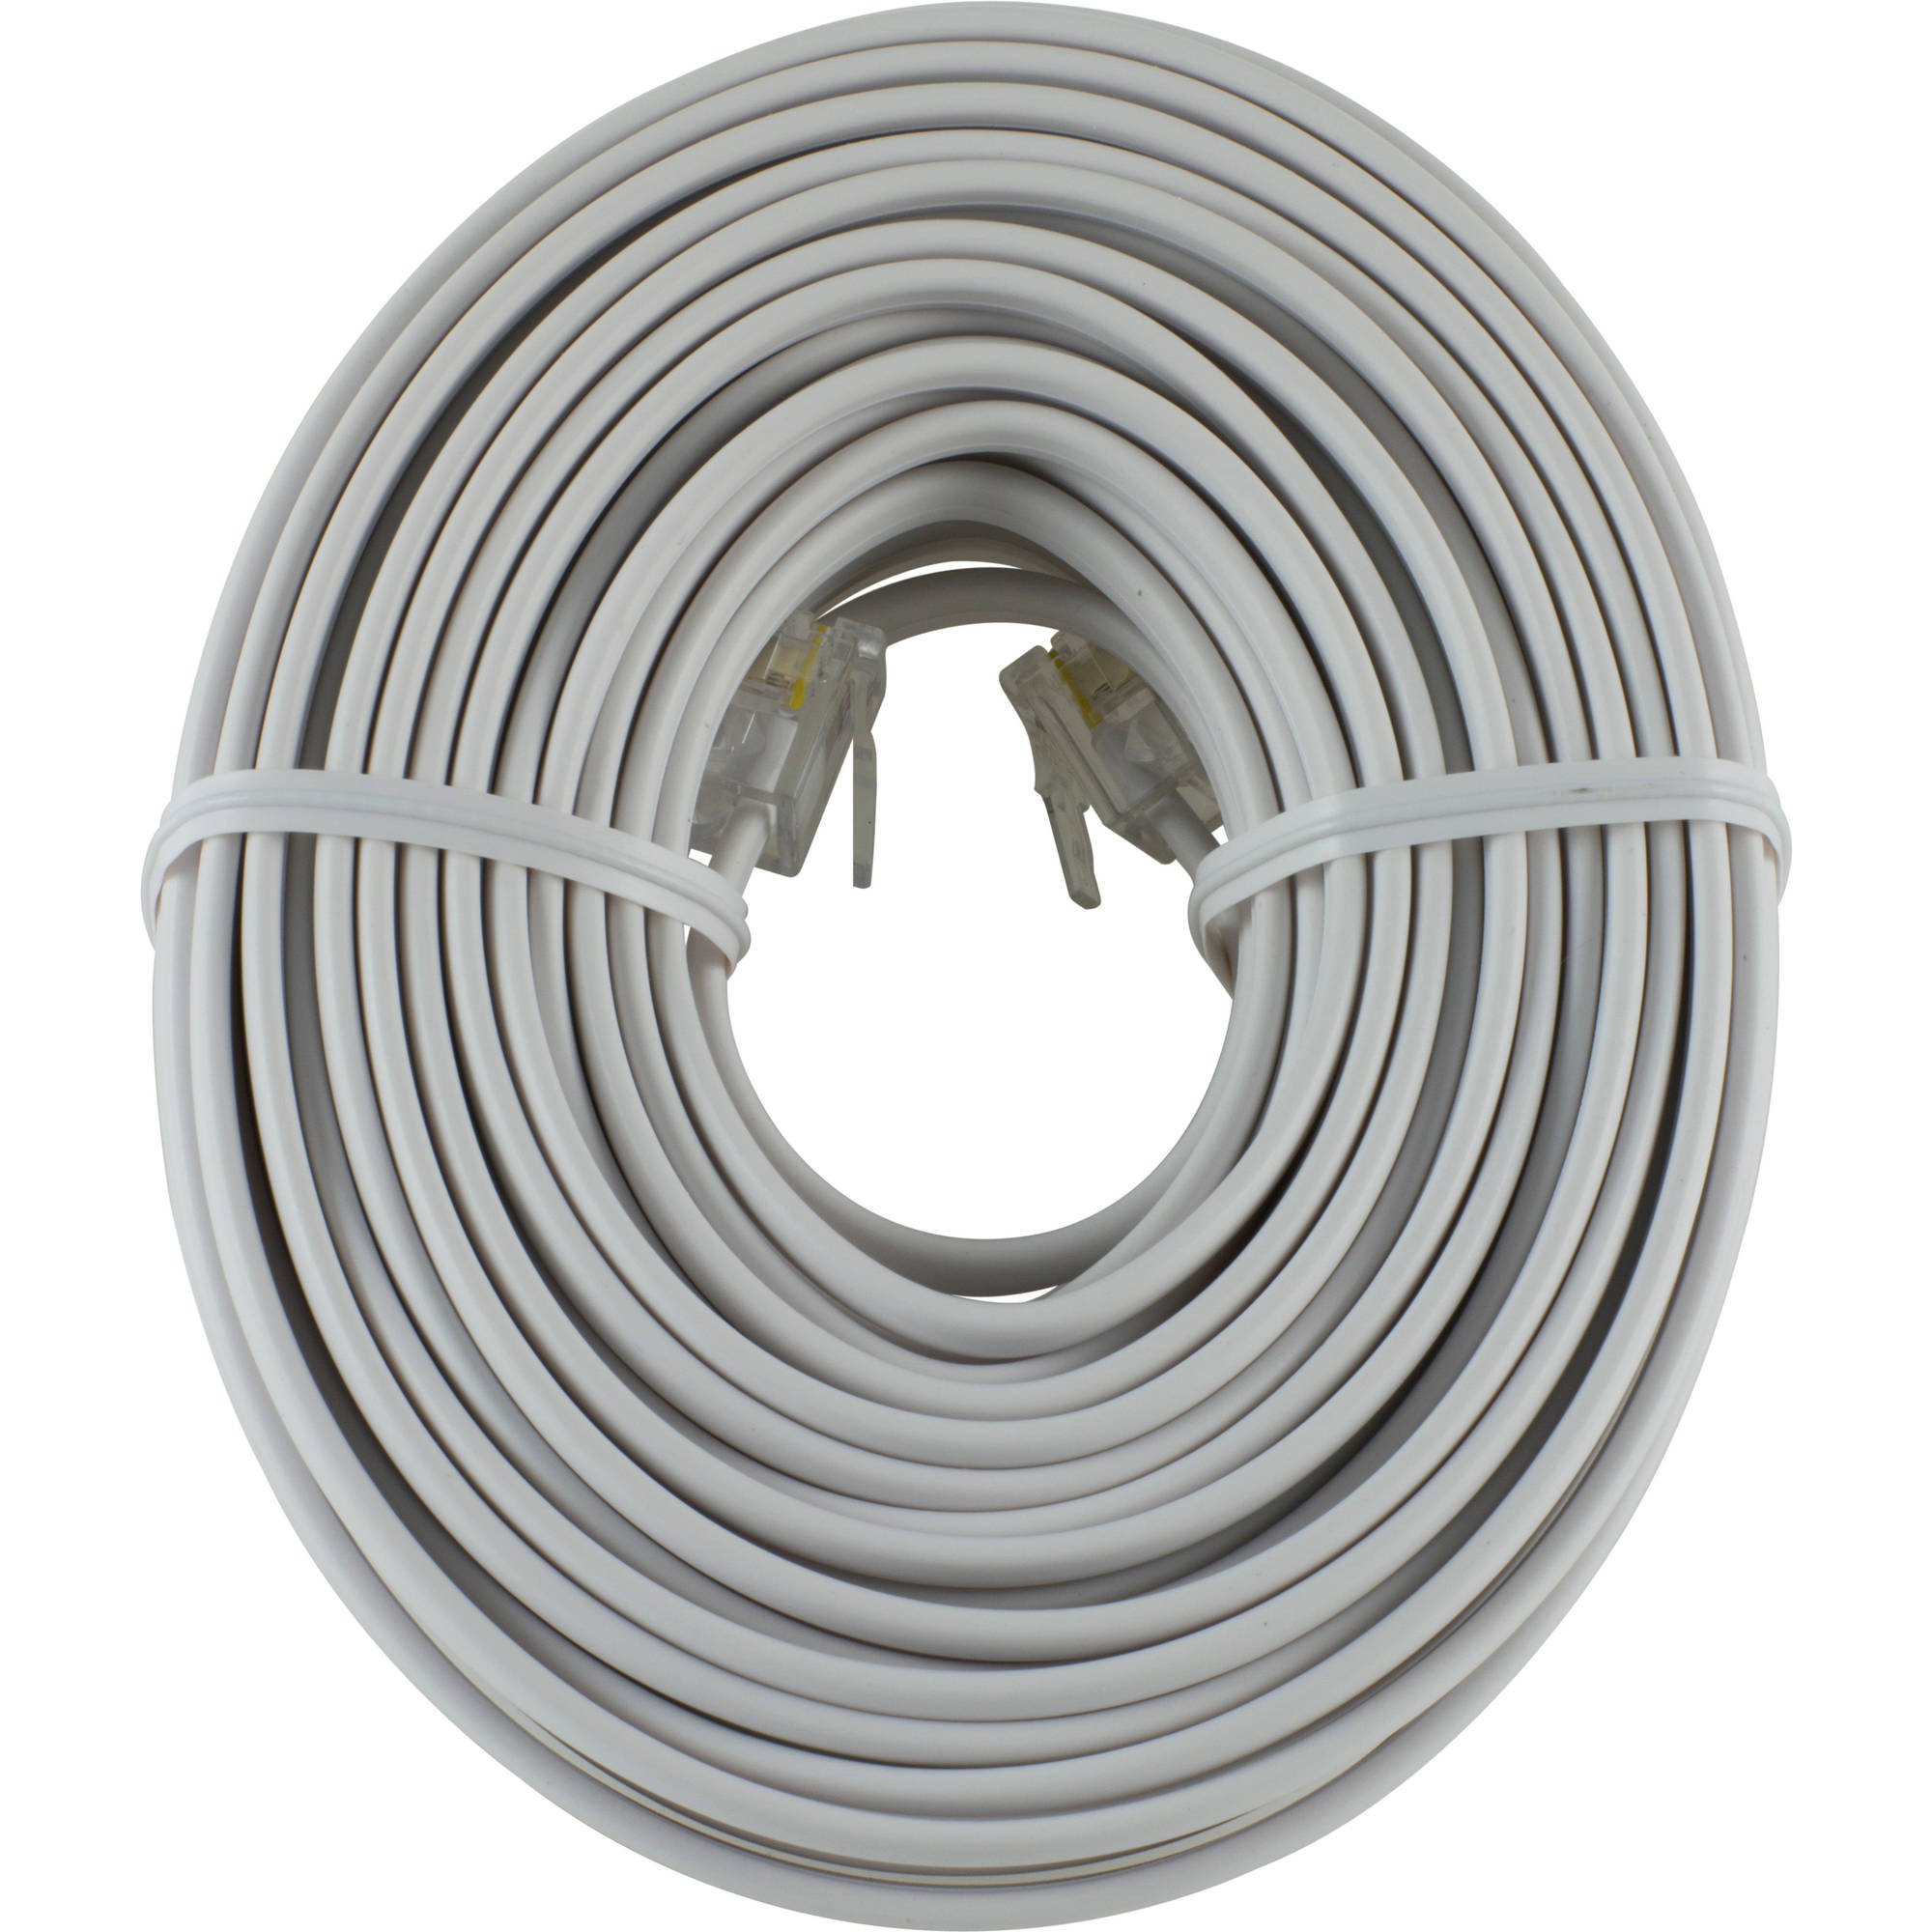 hight resolution of wiring phone cord